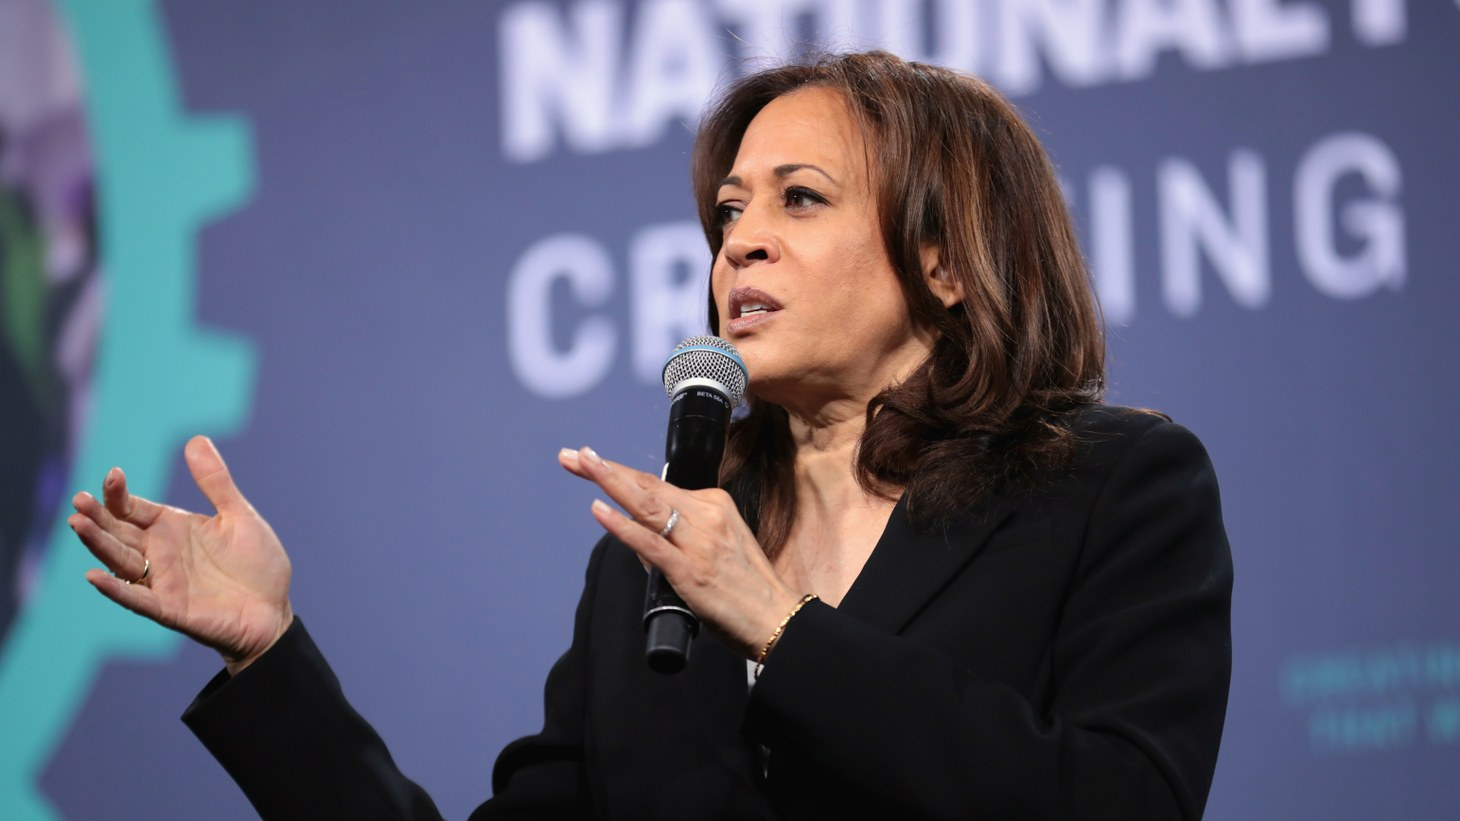 U.S. Senator Kamala Harris speaking at the 2019 National Forum on Wages and Working People, hosted by the Center for the American Progress Action Fund and the SEIU, at the Enclave in Las Vegas, Nevada.